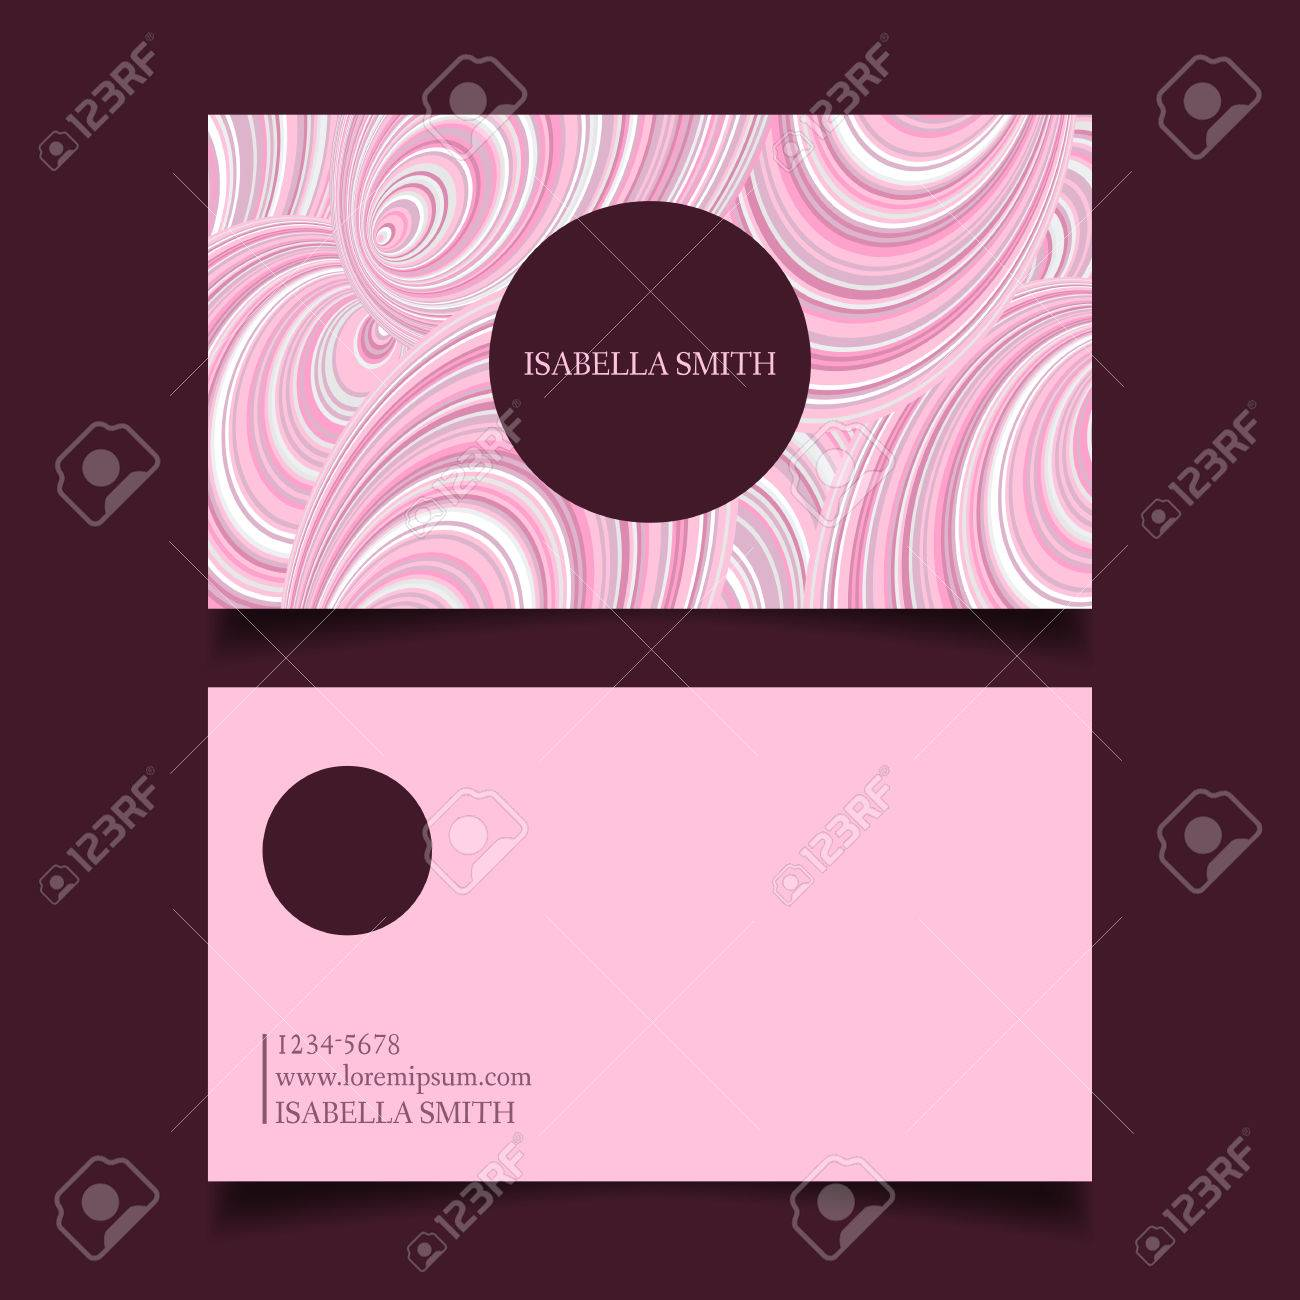 Business card template editable gently pink color palette design business card template editable gently pink color palette design vector stock vector colourmoves